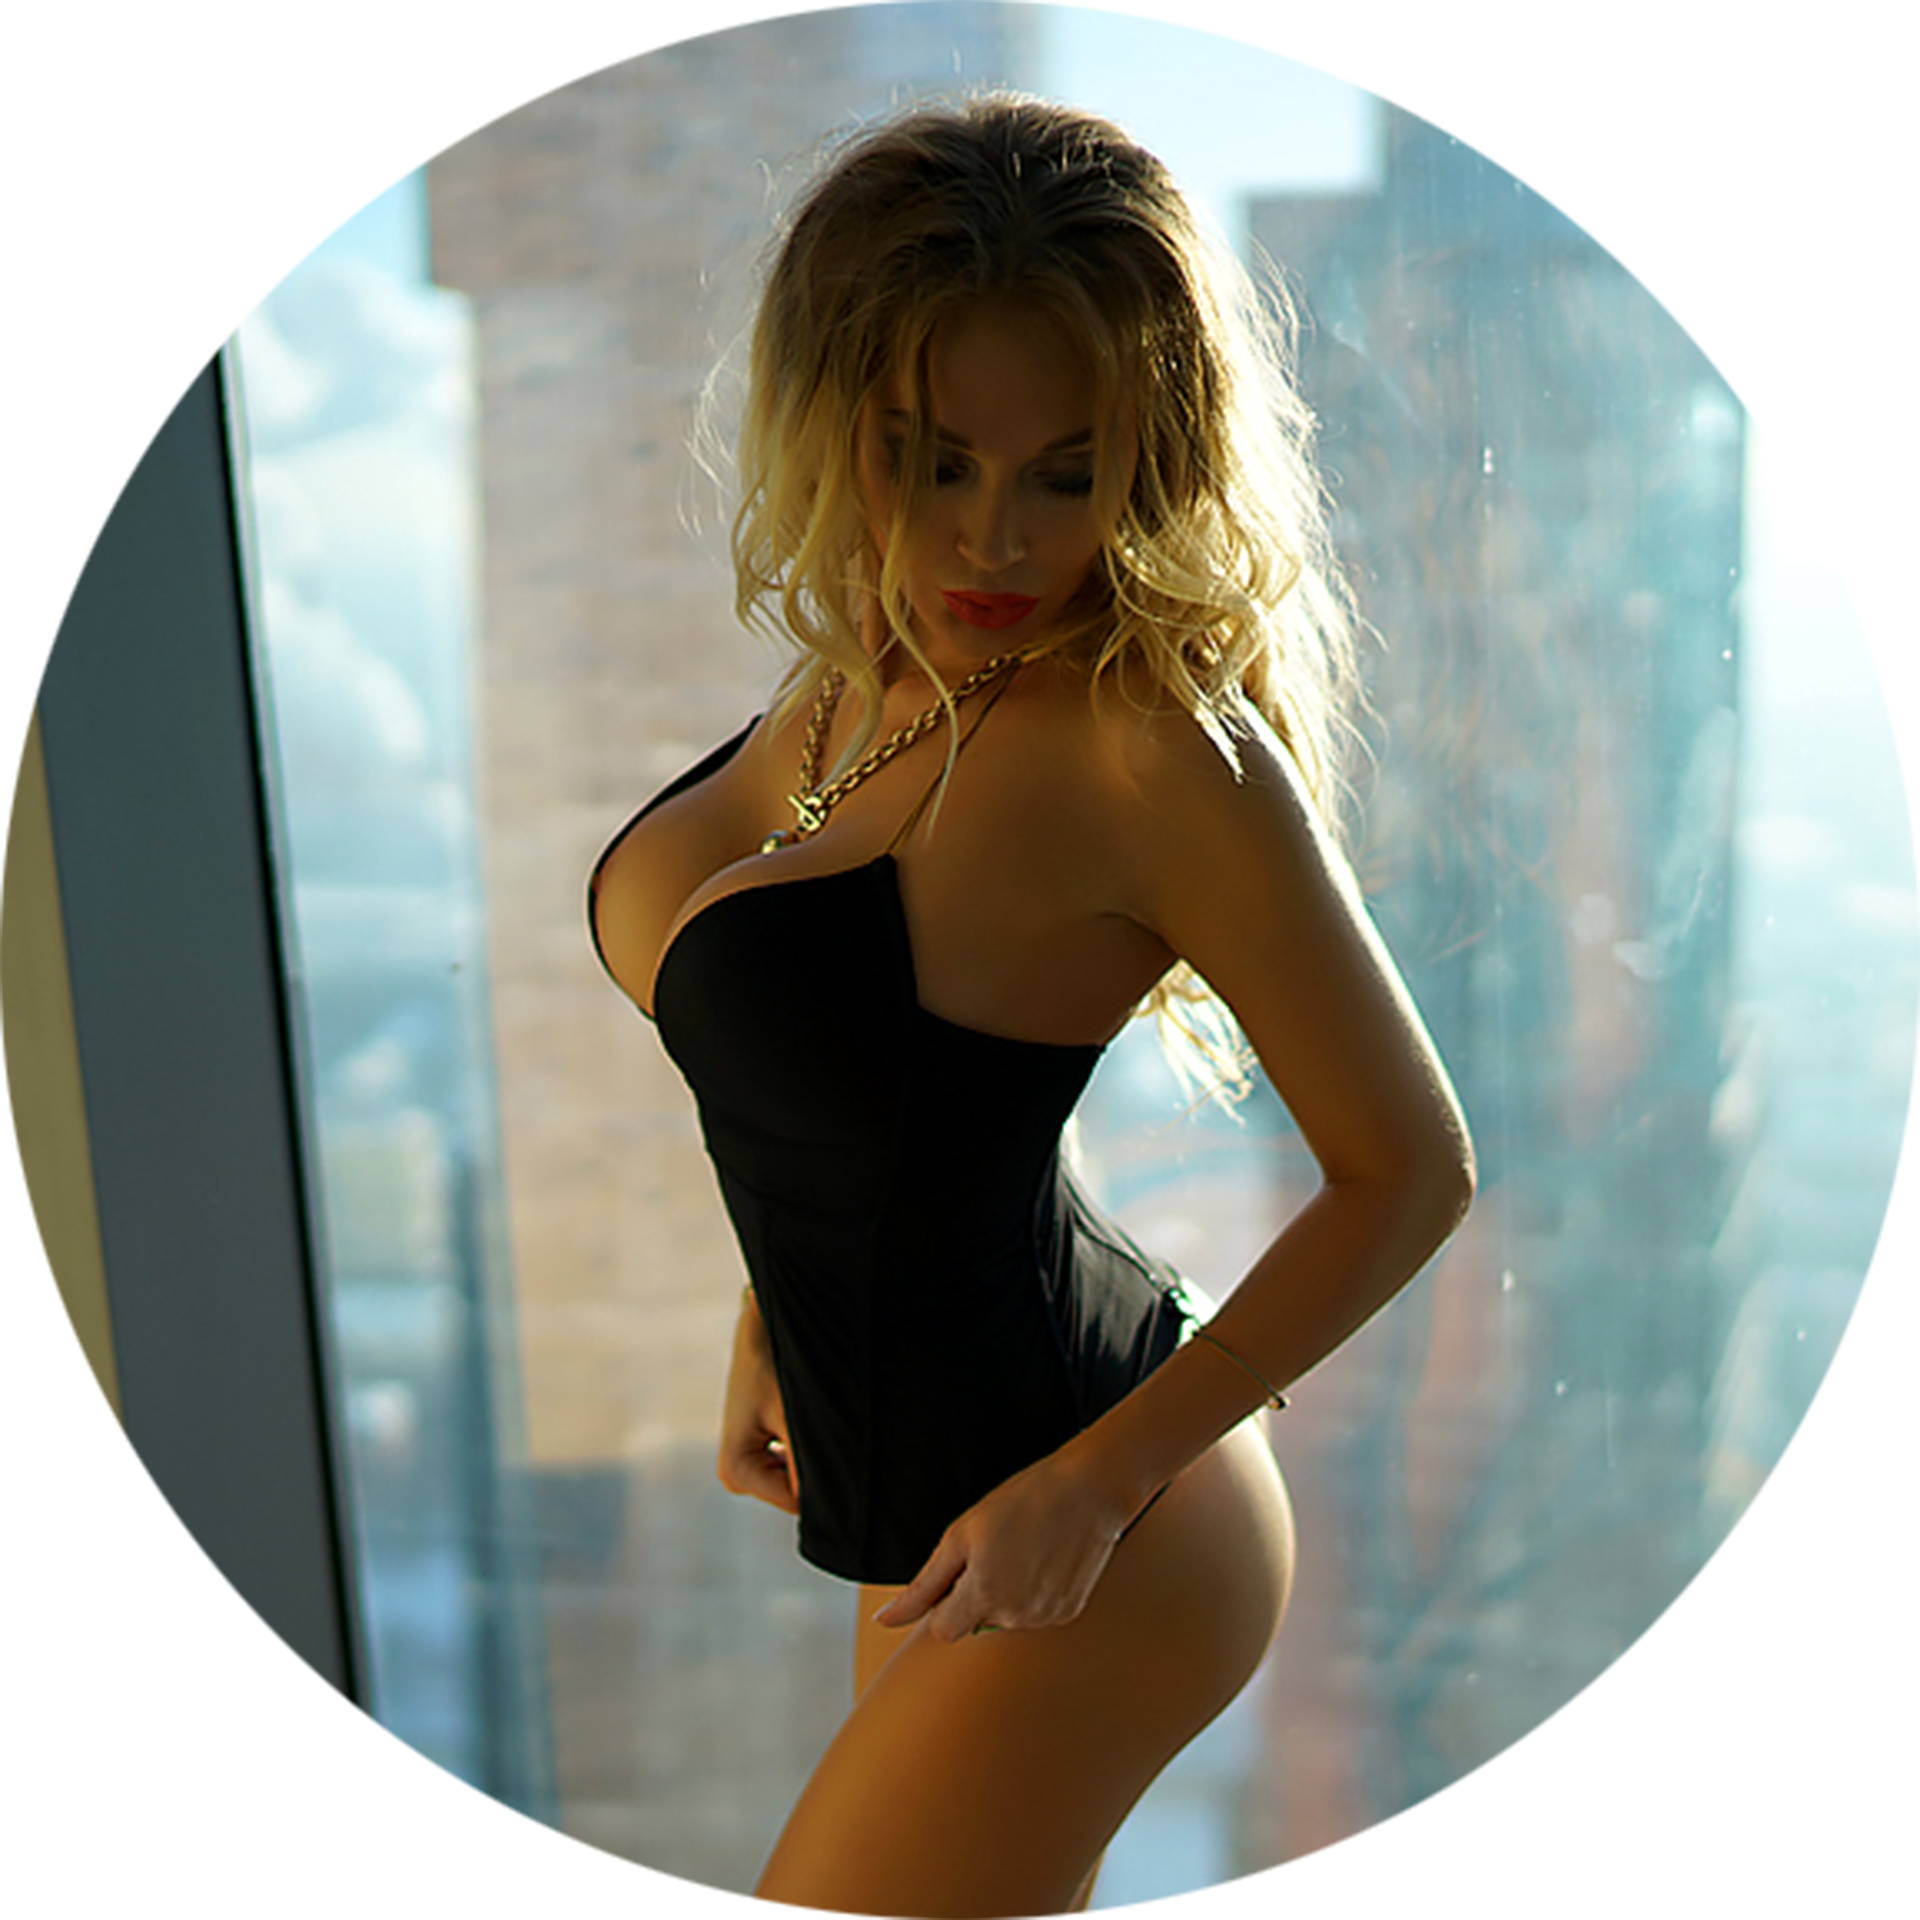 Los Angeles independent escort, Karina